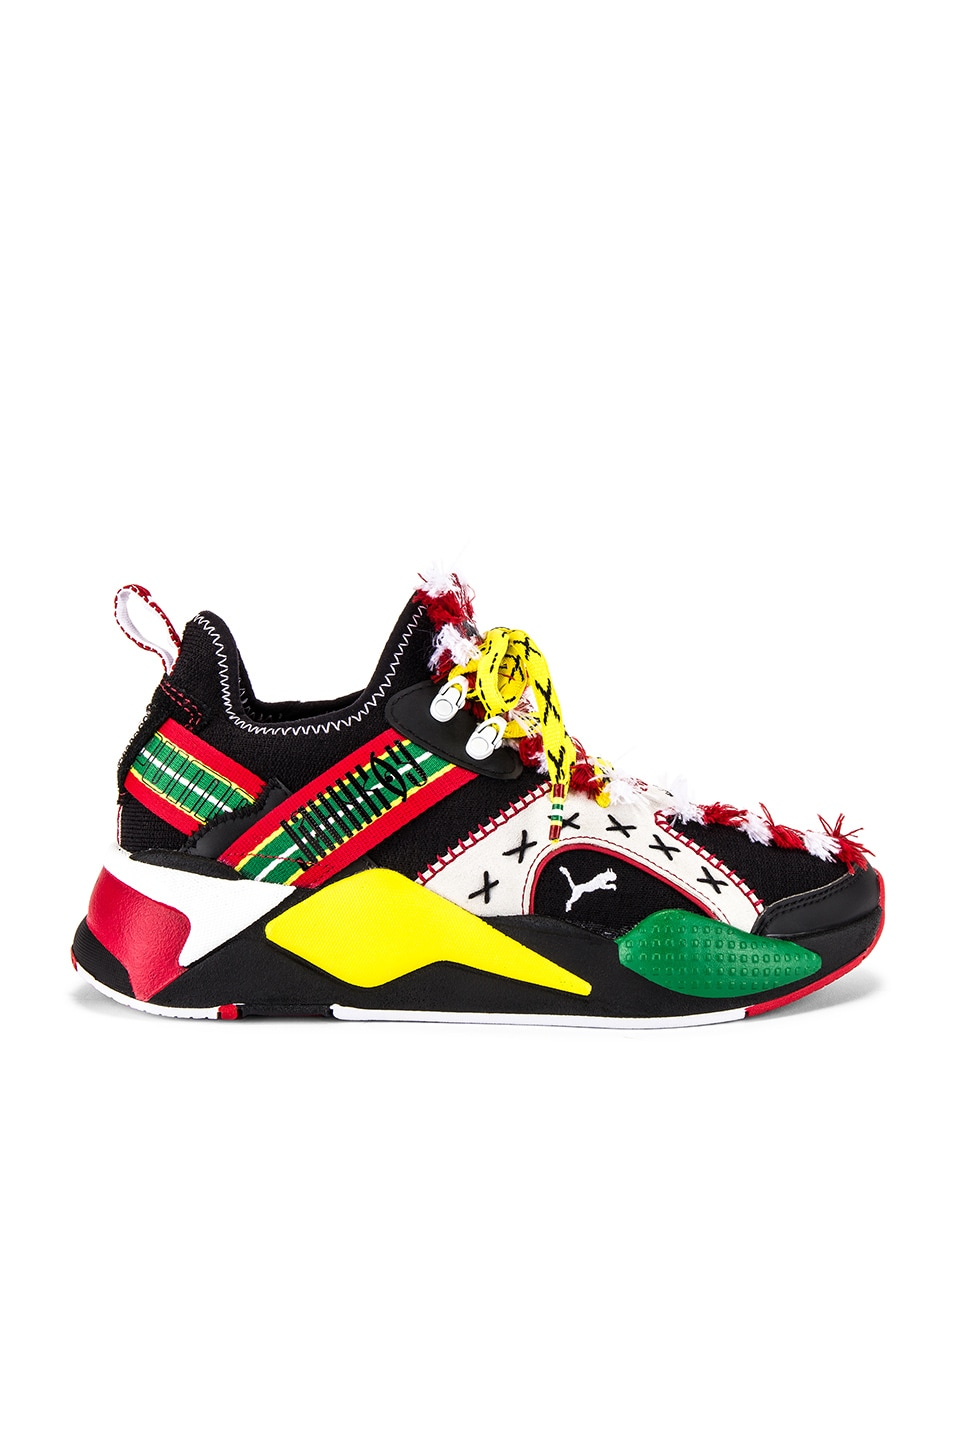 Image 2 of Puma Select RS-X Knit Jahnkoy in Puma Black